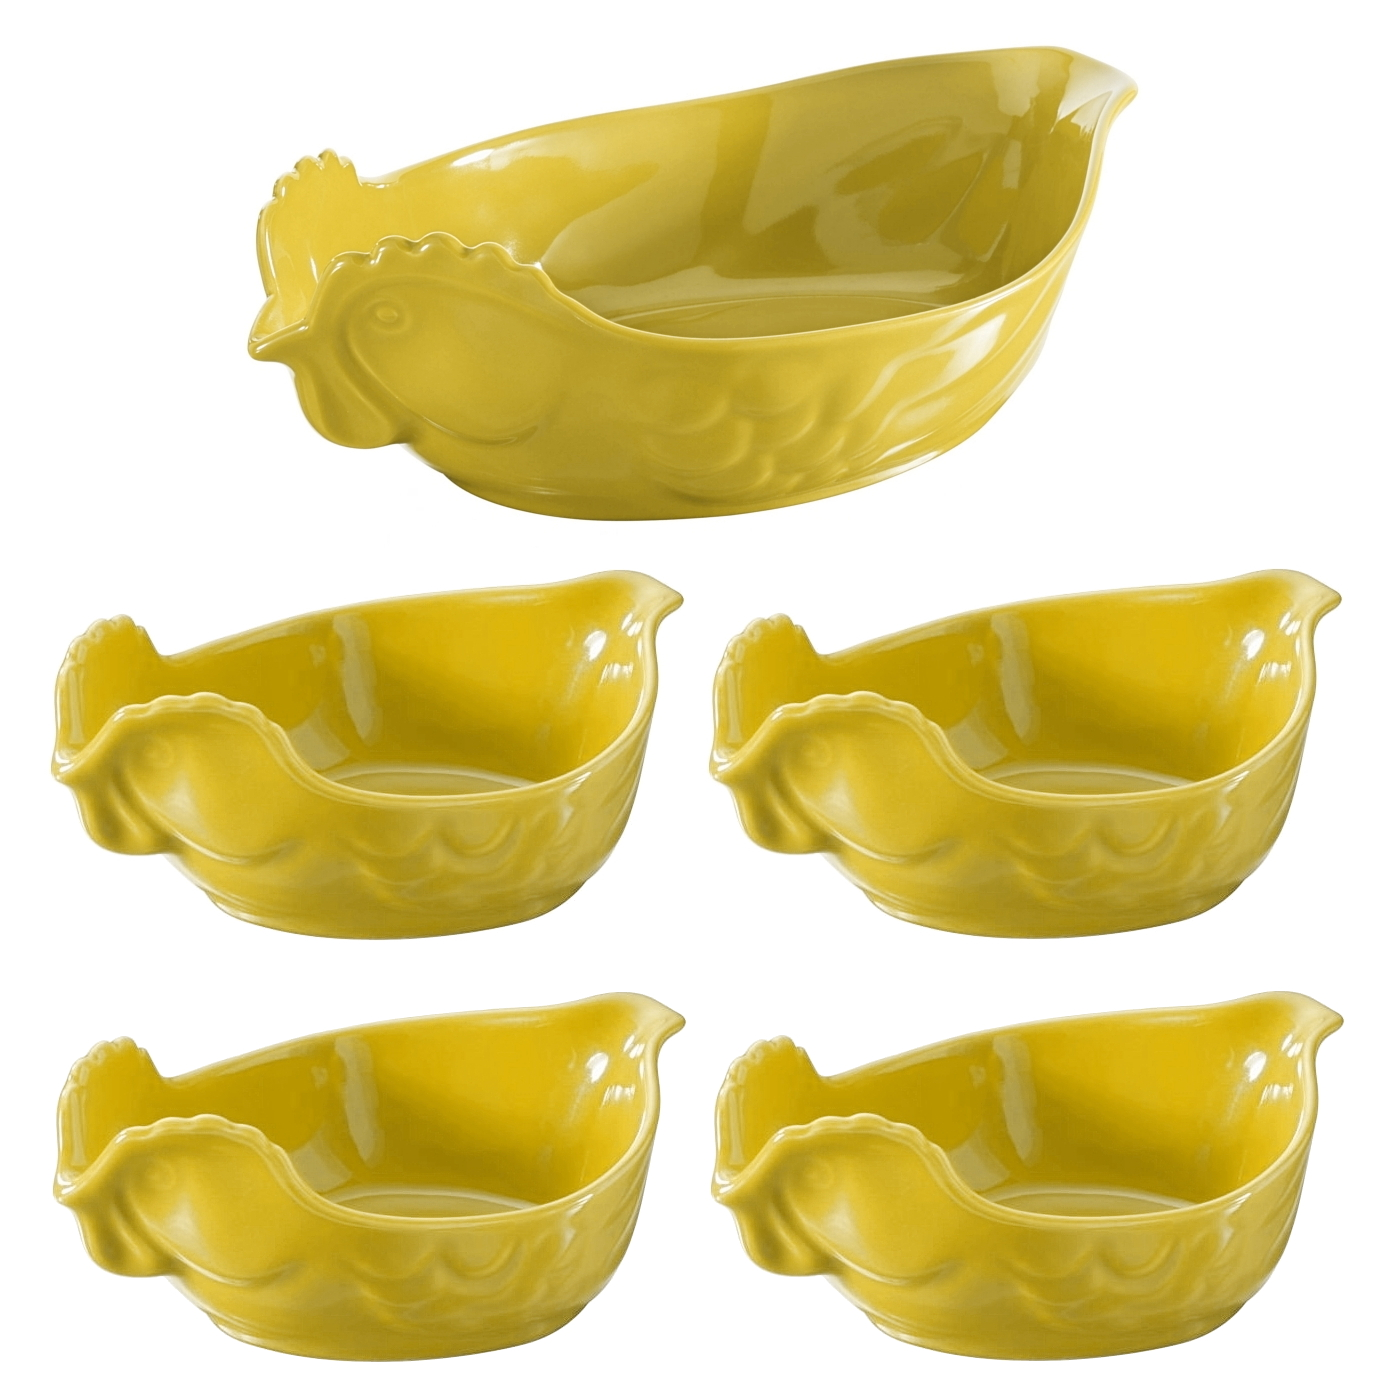 Revol Five Piece Happy Cuisine Poultry Roaster and Four Poultry Side Dishes Seychelles Yellow